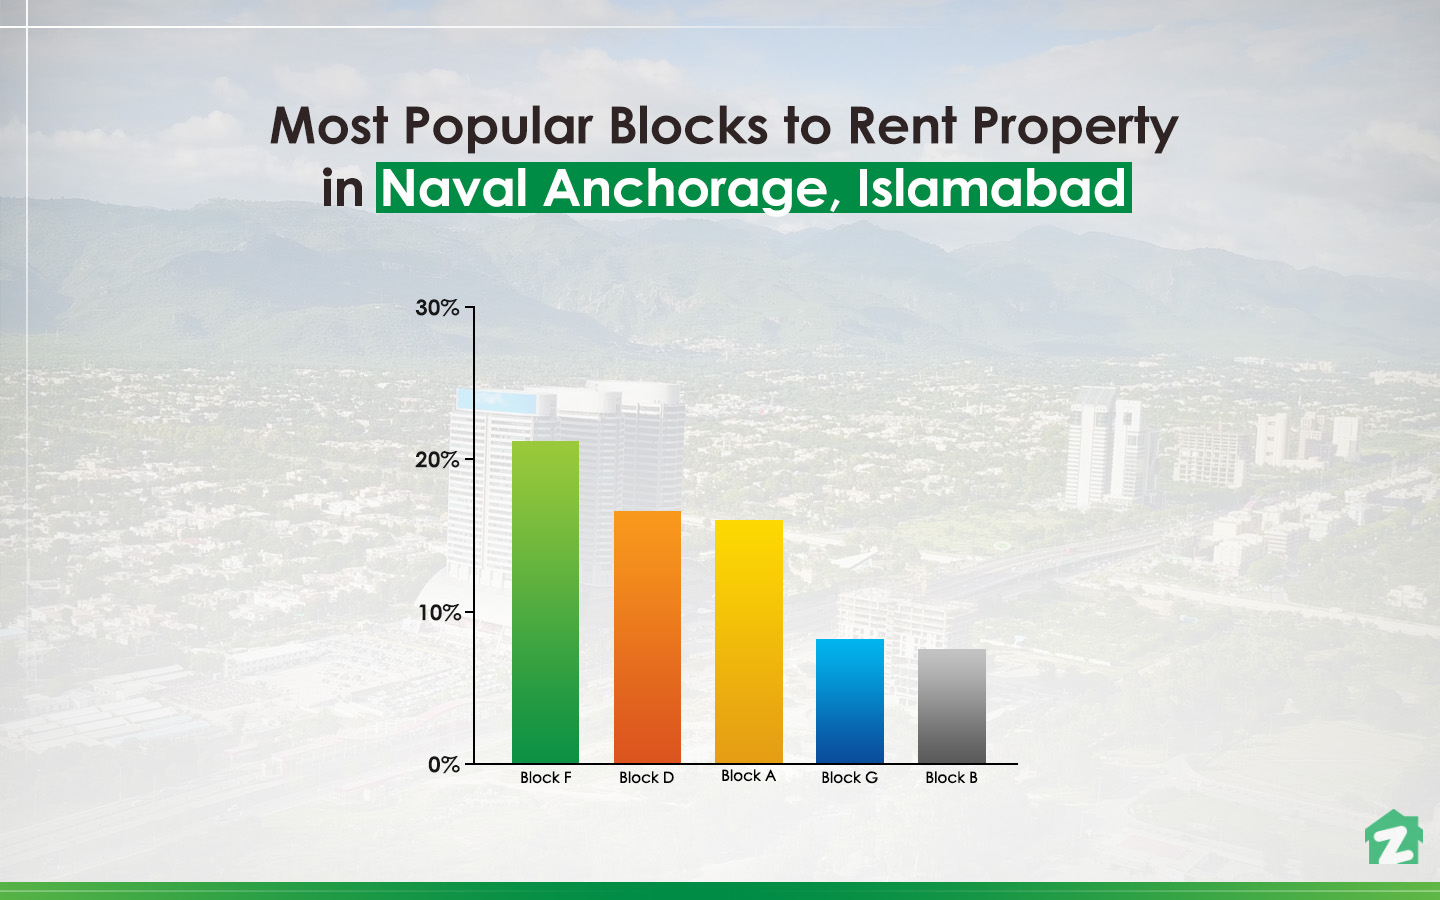 Most Popular Blocks to rent Property in Naval Anchorage, Islamabad